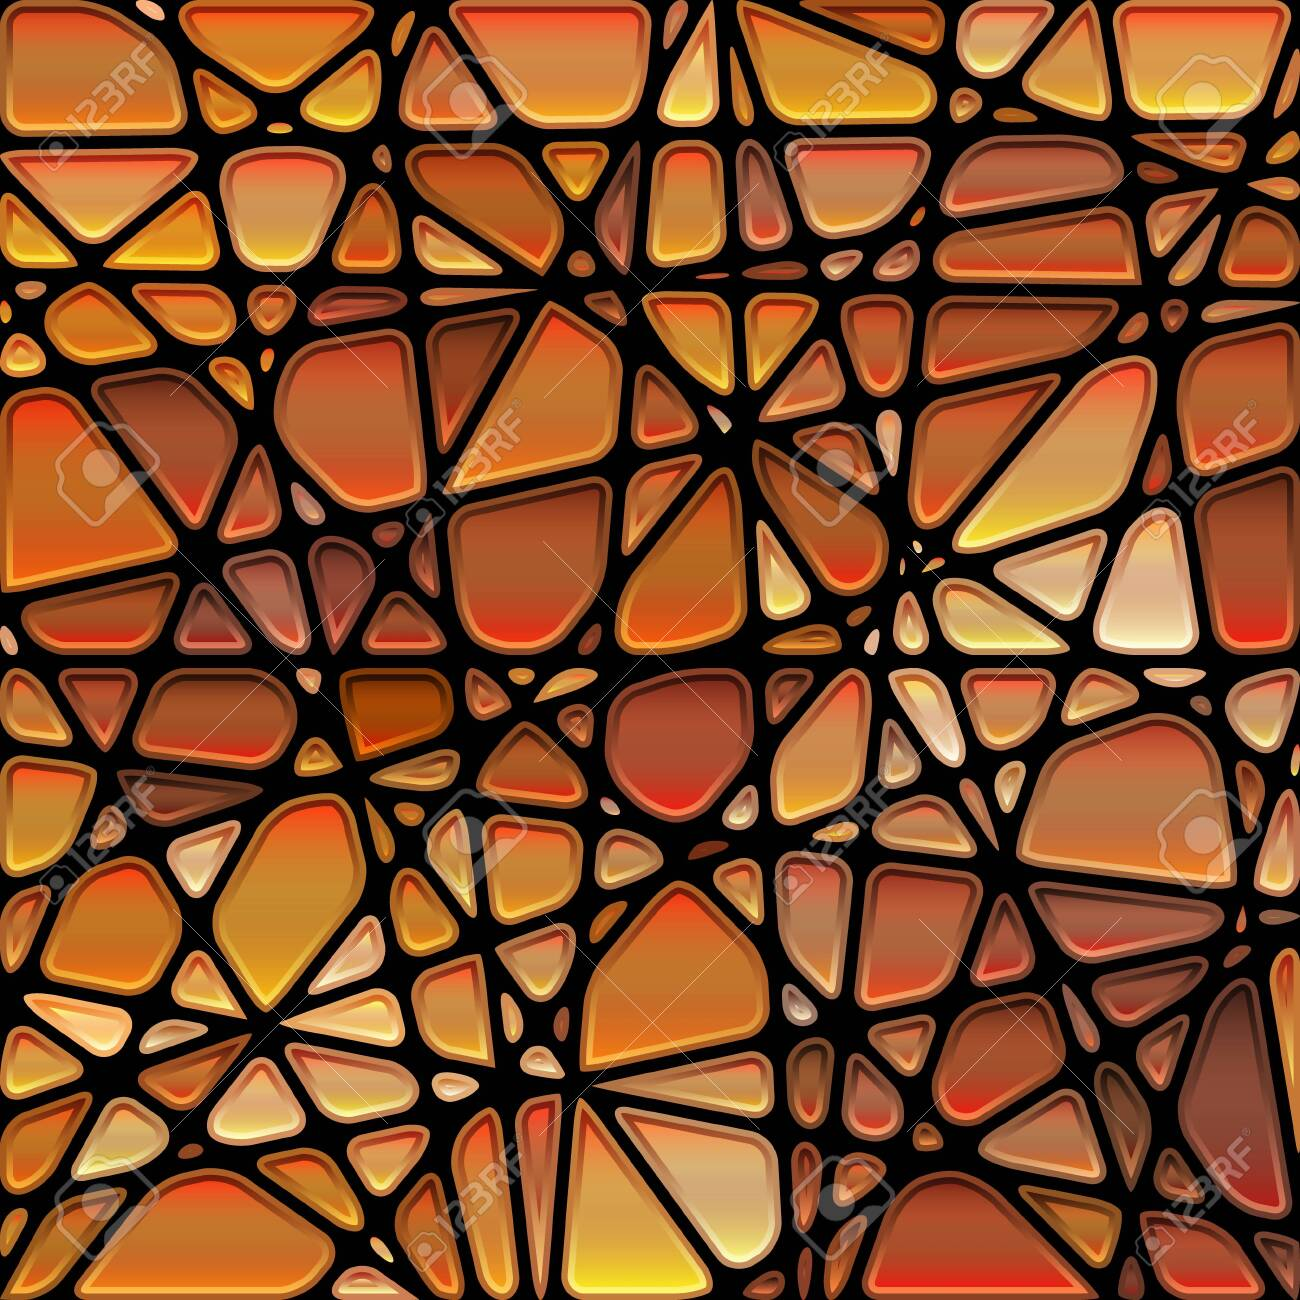 abstract vector stained-glass mosaic background - orange and brown - 123063225